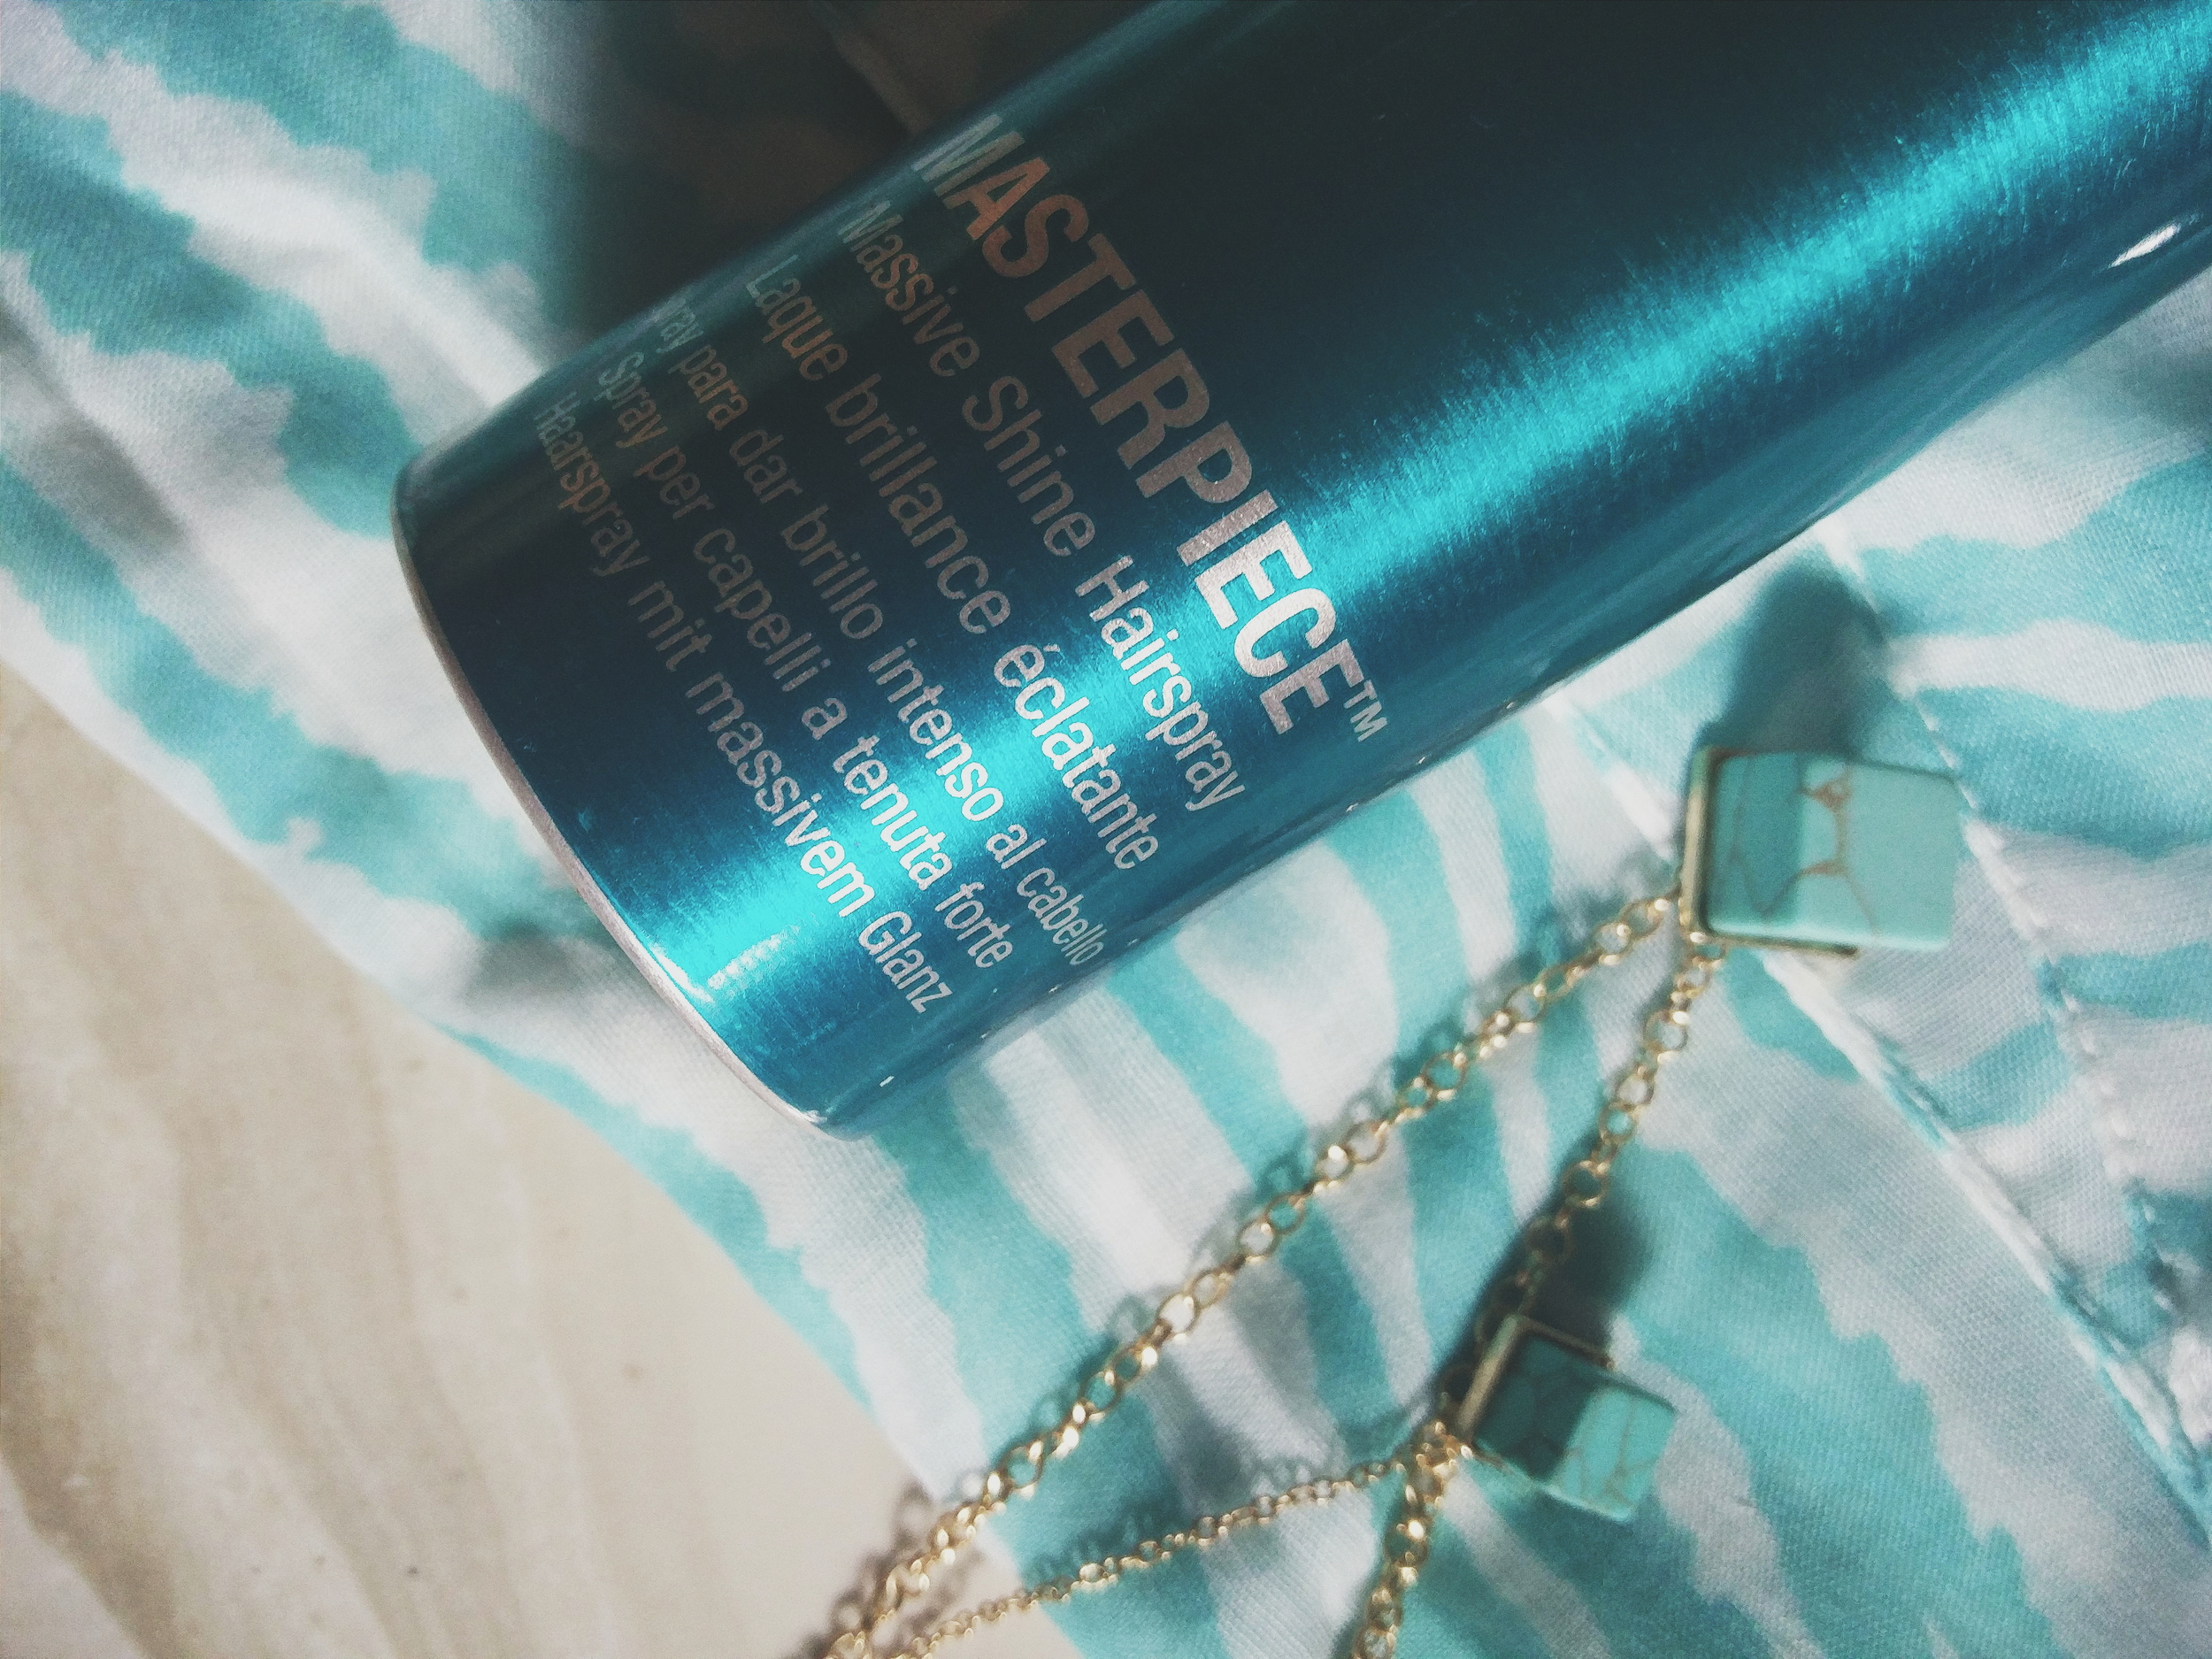 The-Chic-Armoire-by-Nidhi-Kunder-Tigi-Bed-Head-Masterpiece-Review-2